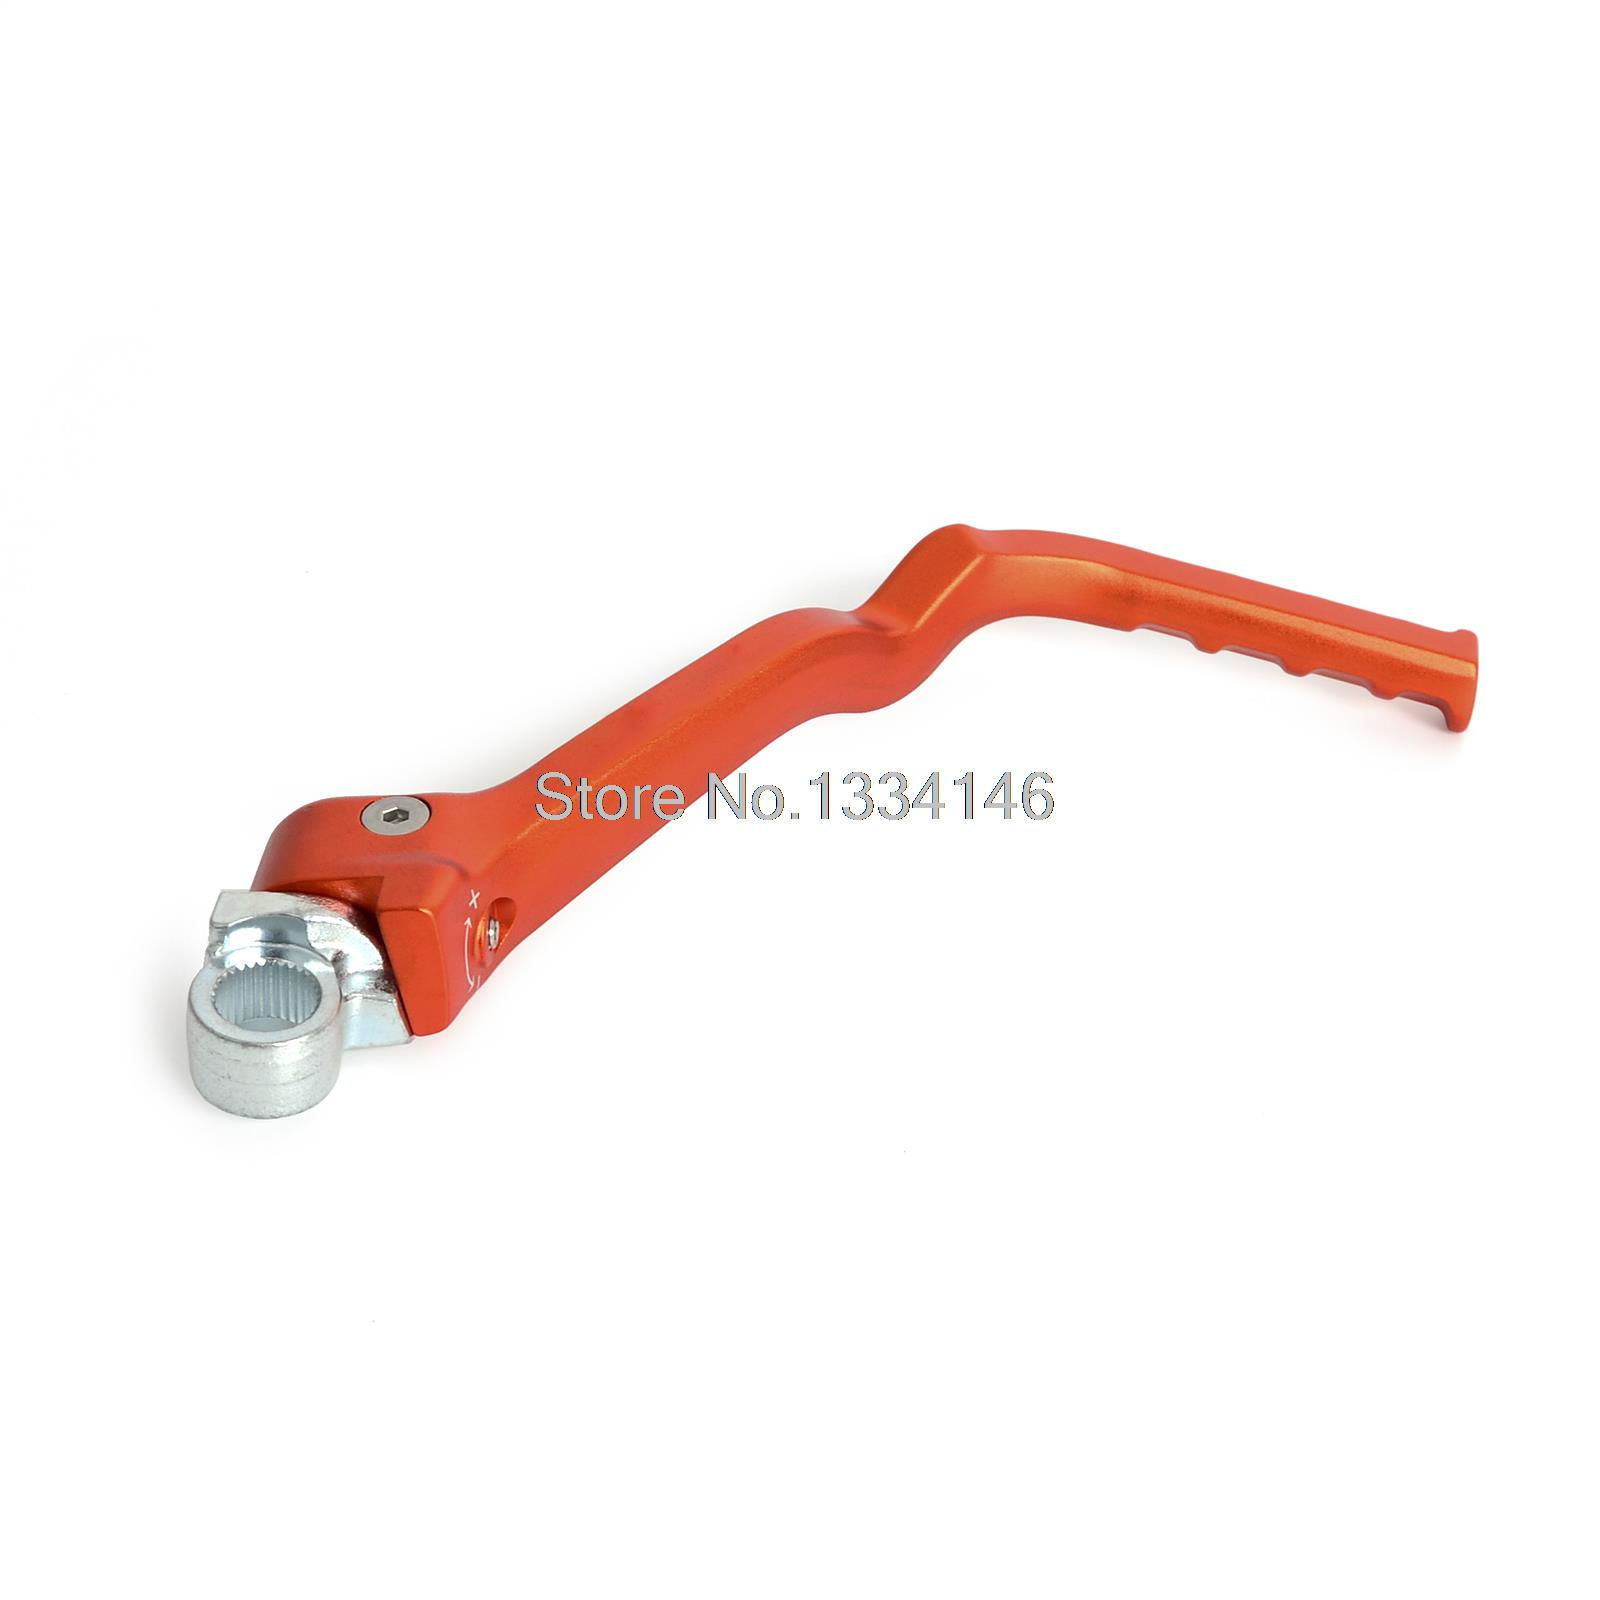 Forged kick start lever for ktm 250 sx 250 xc 250 xcw 2011 2012 2013 2014